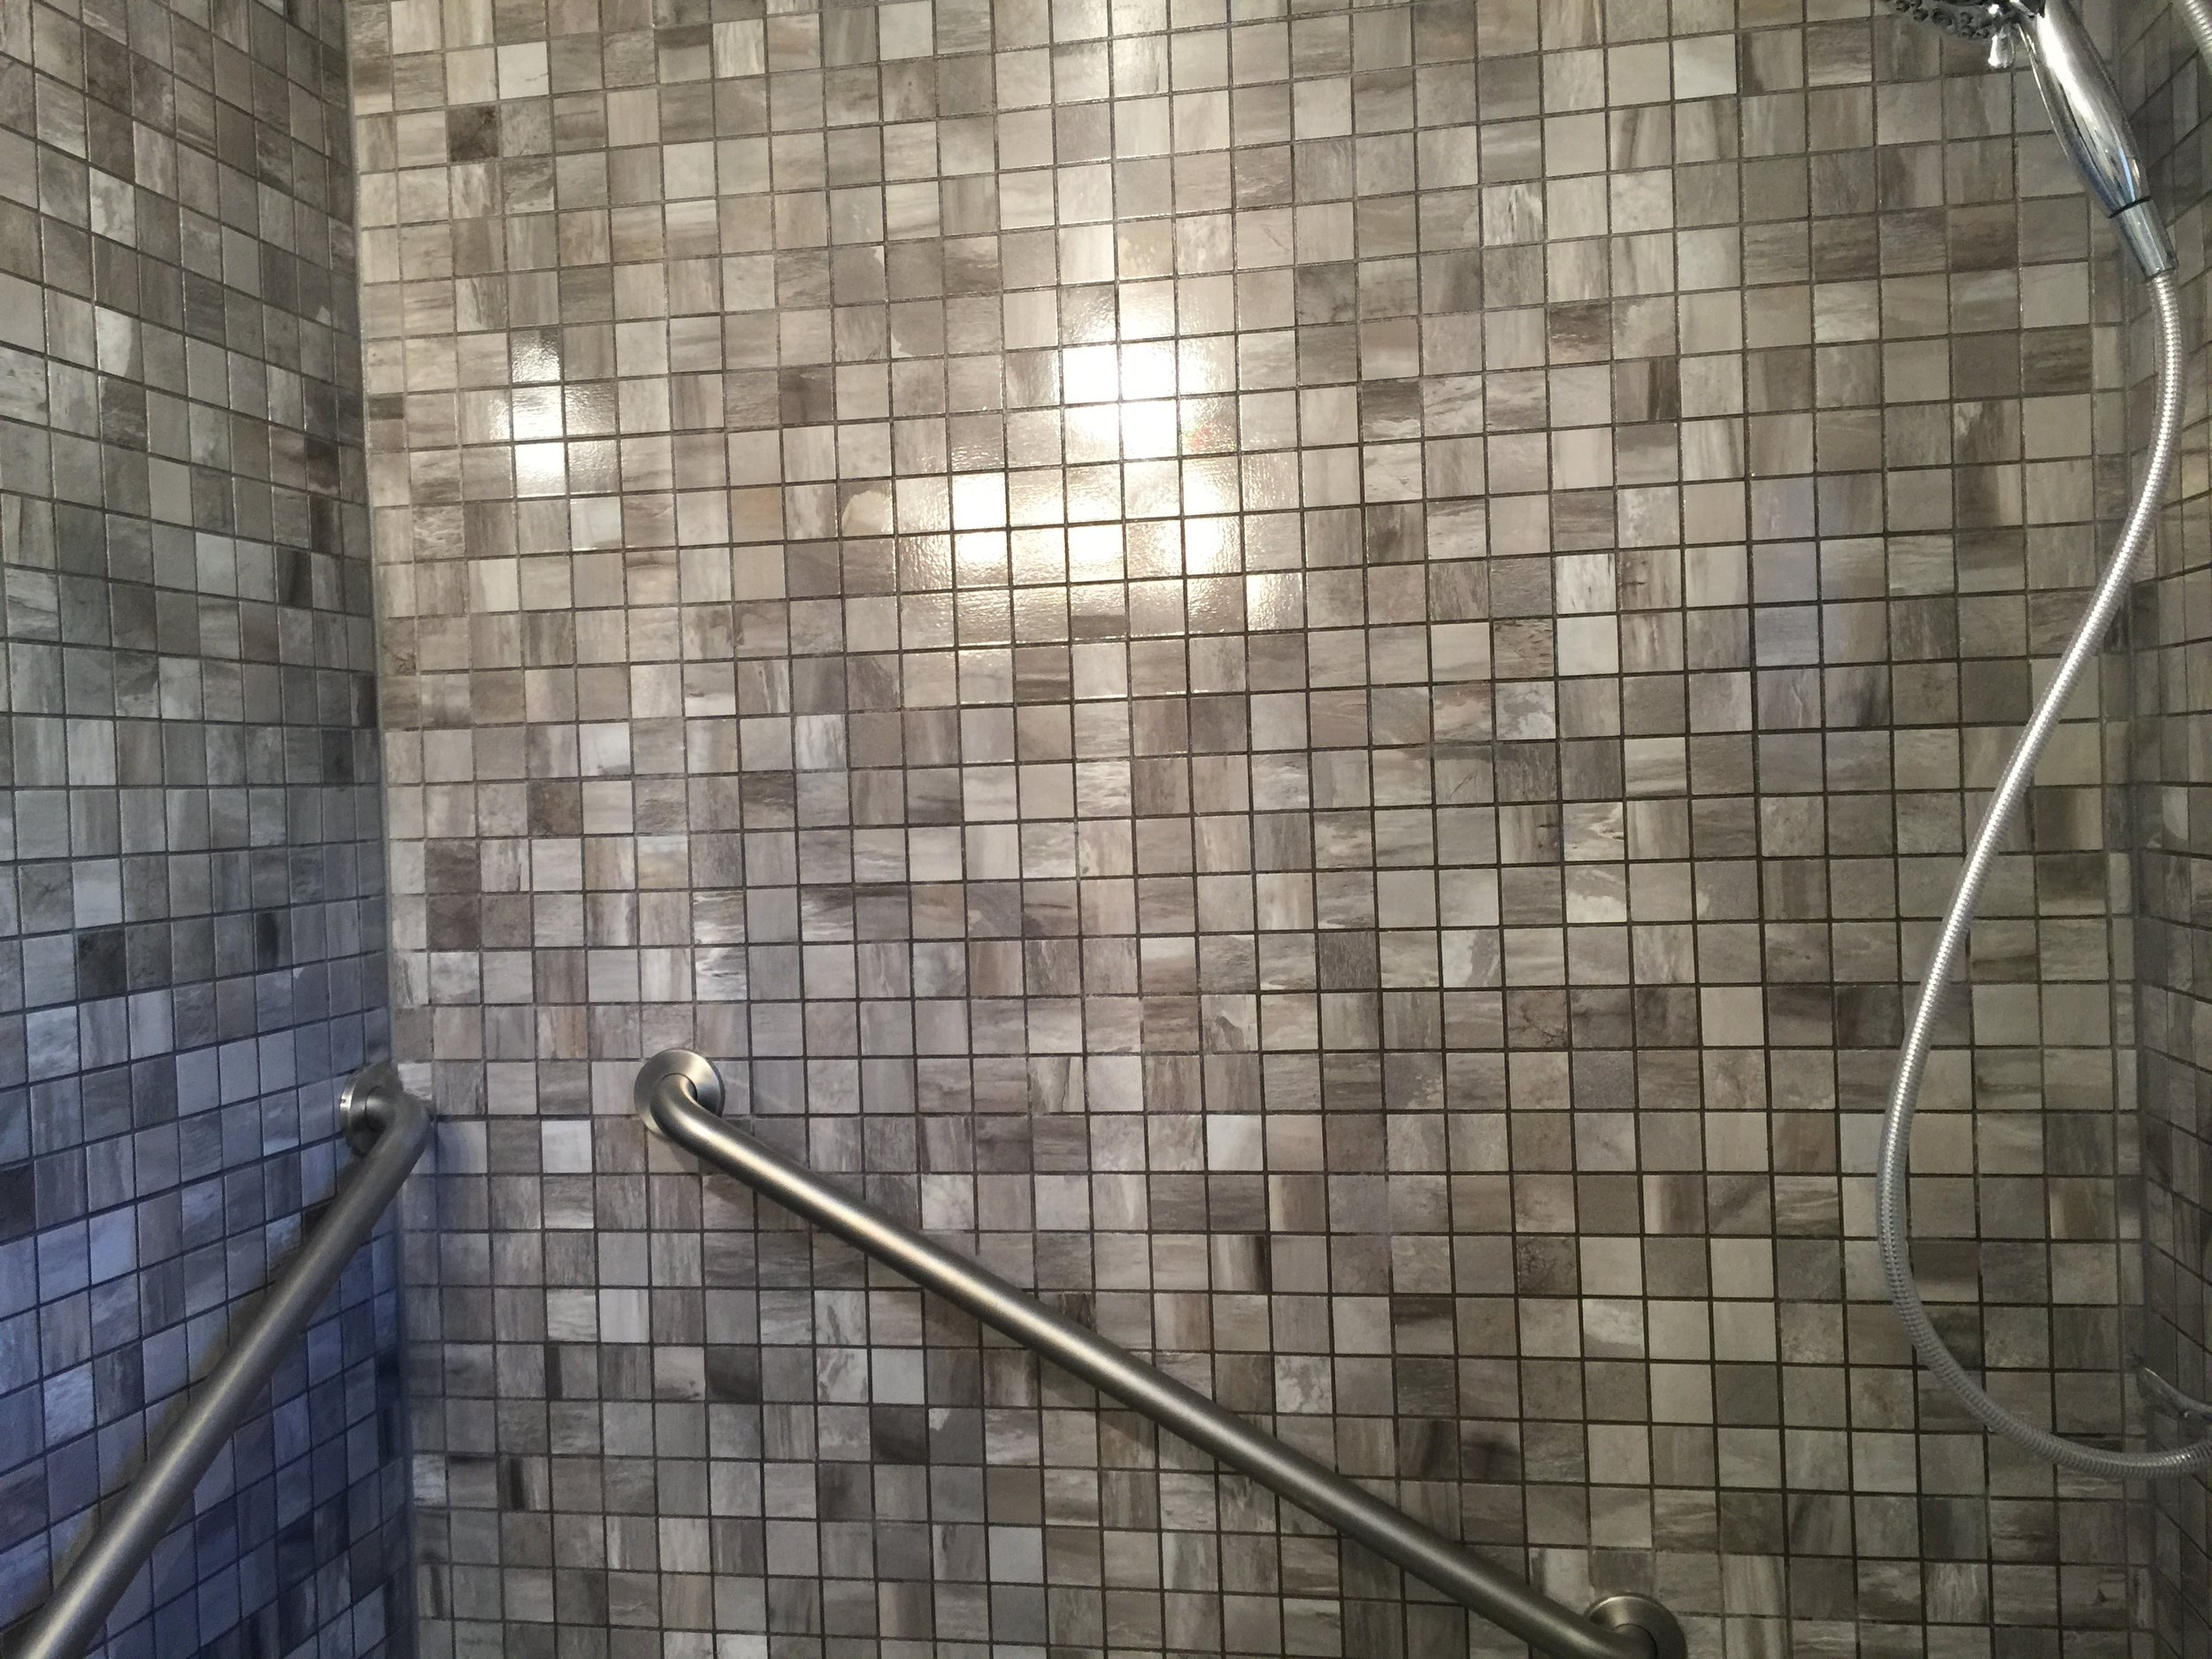 Shower after.